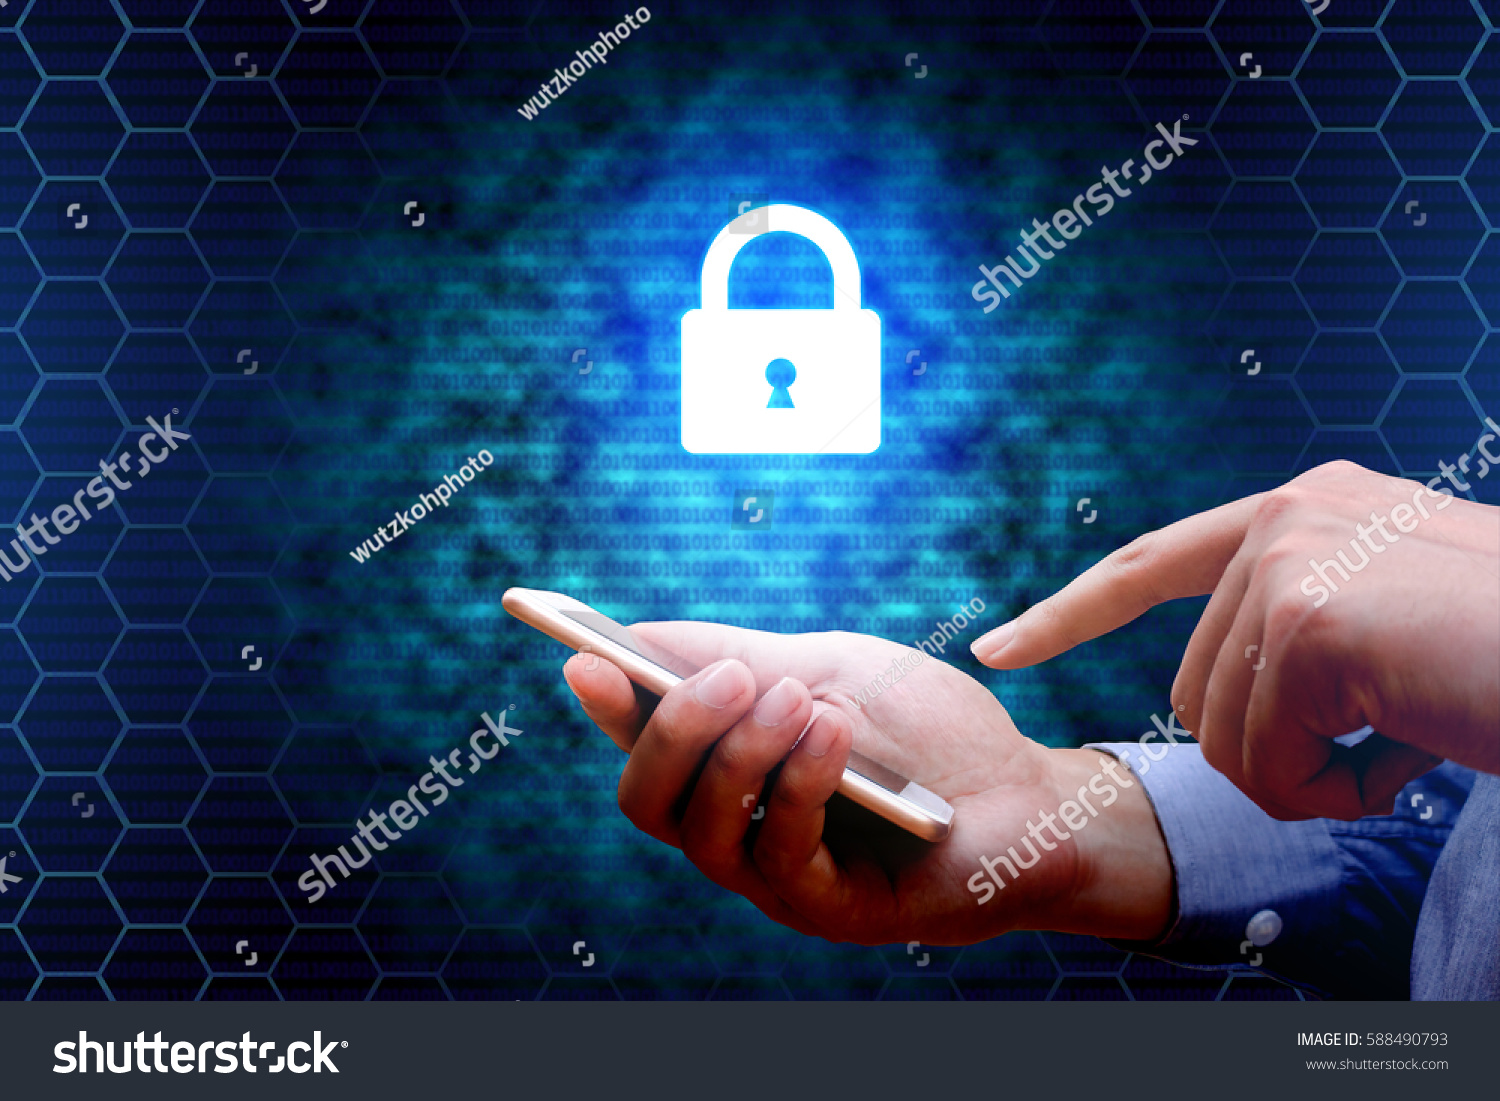 Cyber Security Online